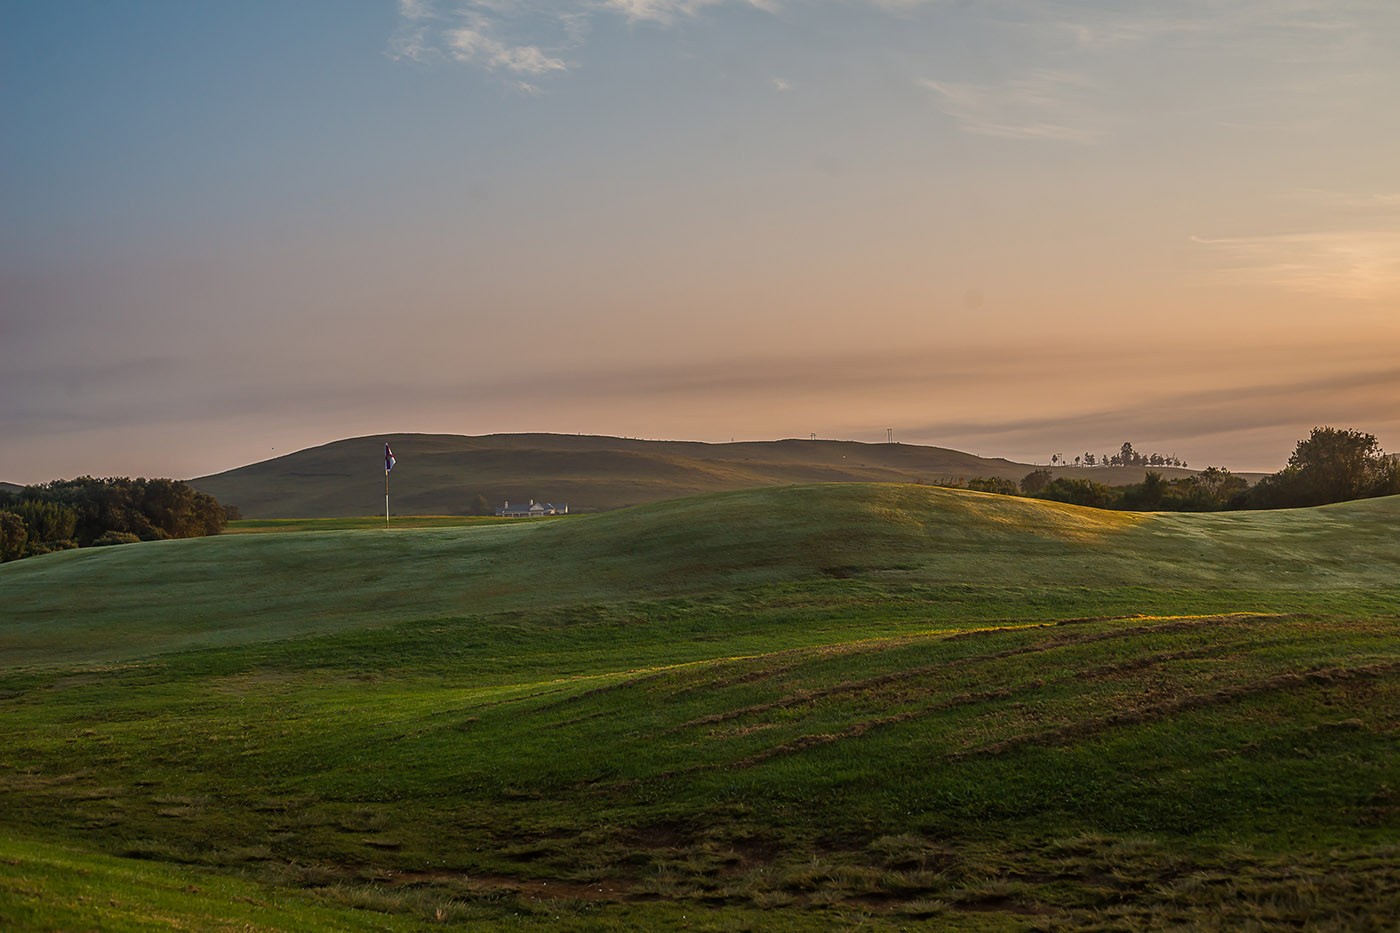 golf-gallery-gowrie-farm-pro-shop-golf-course-country-retreat-cultural-attractions-Nottingham-Road-midlands